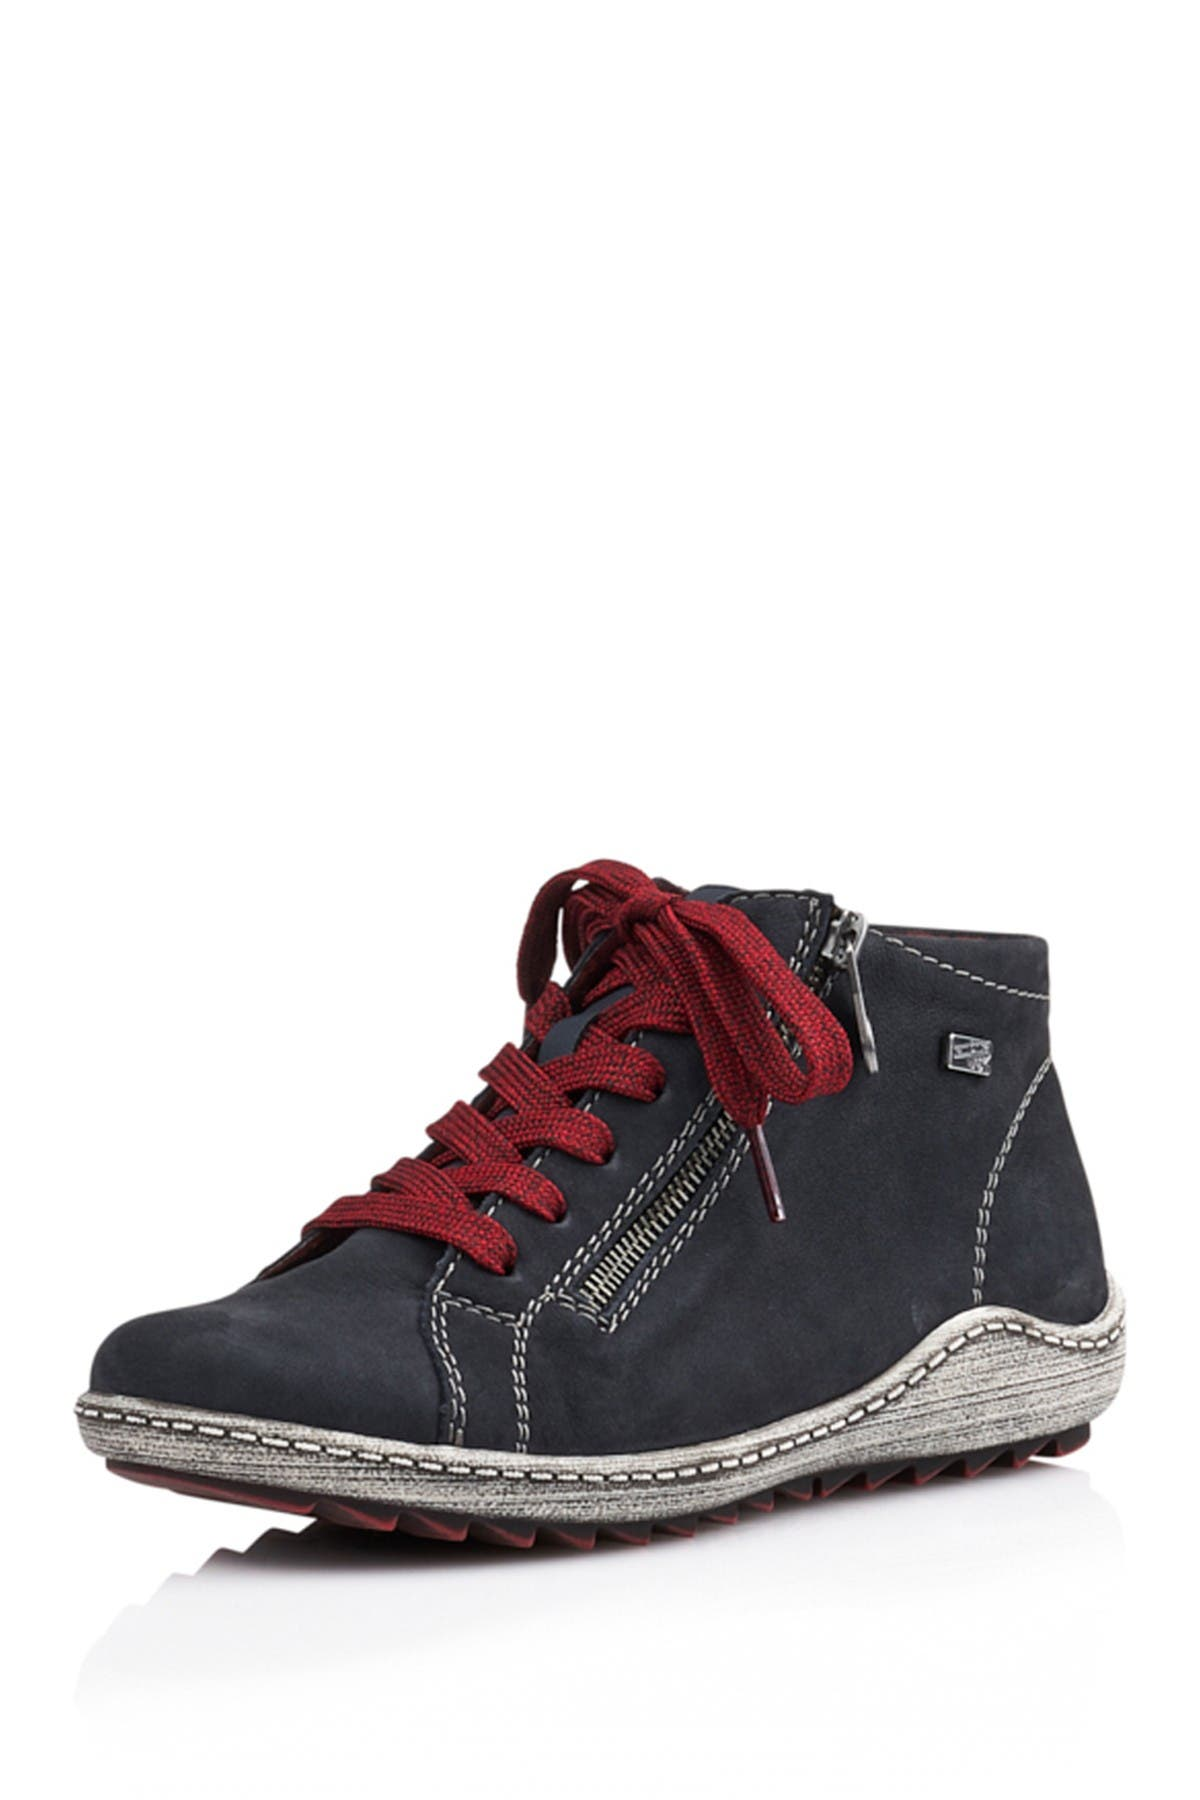 Image of Remonte Liv Sneaker